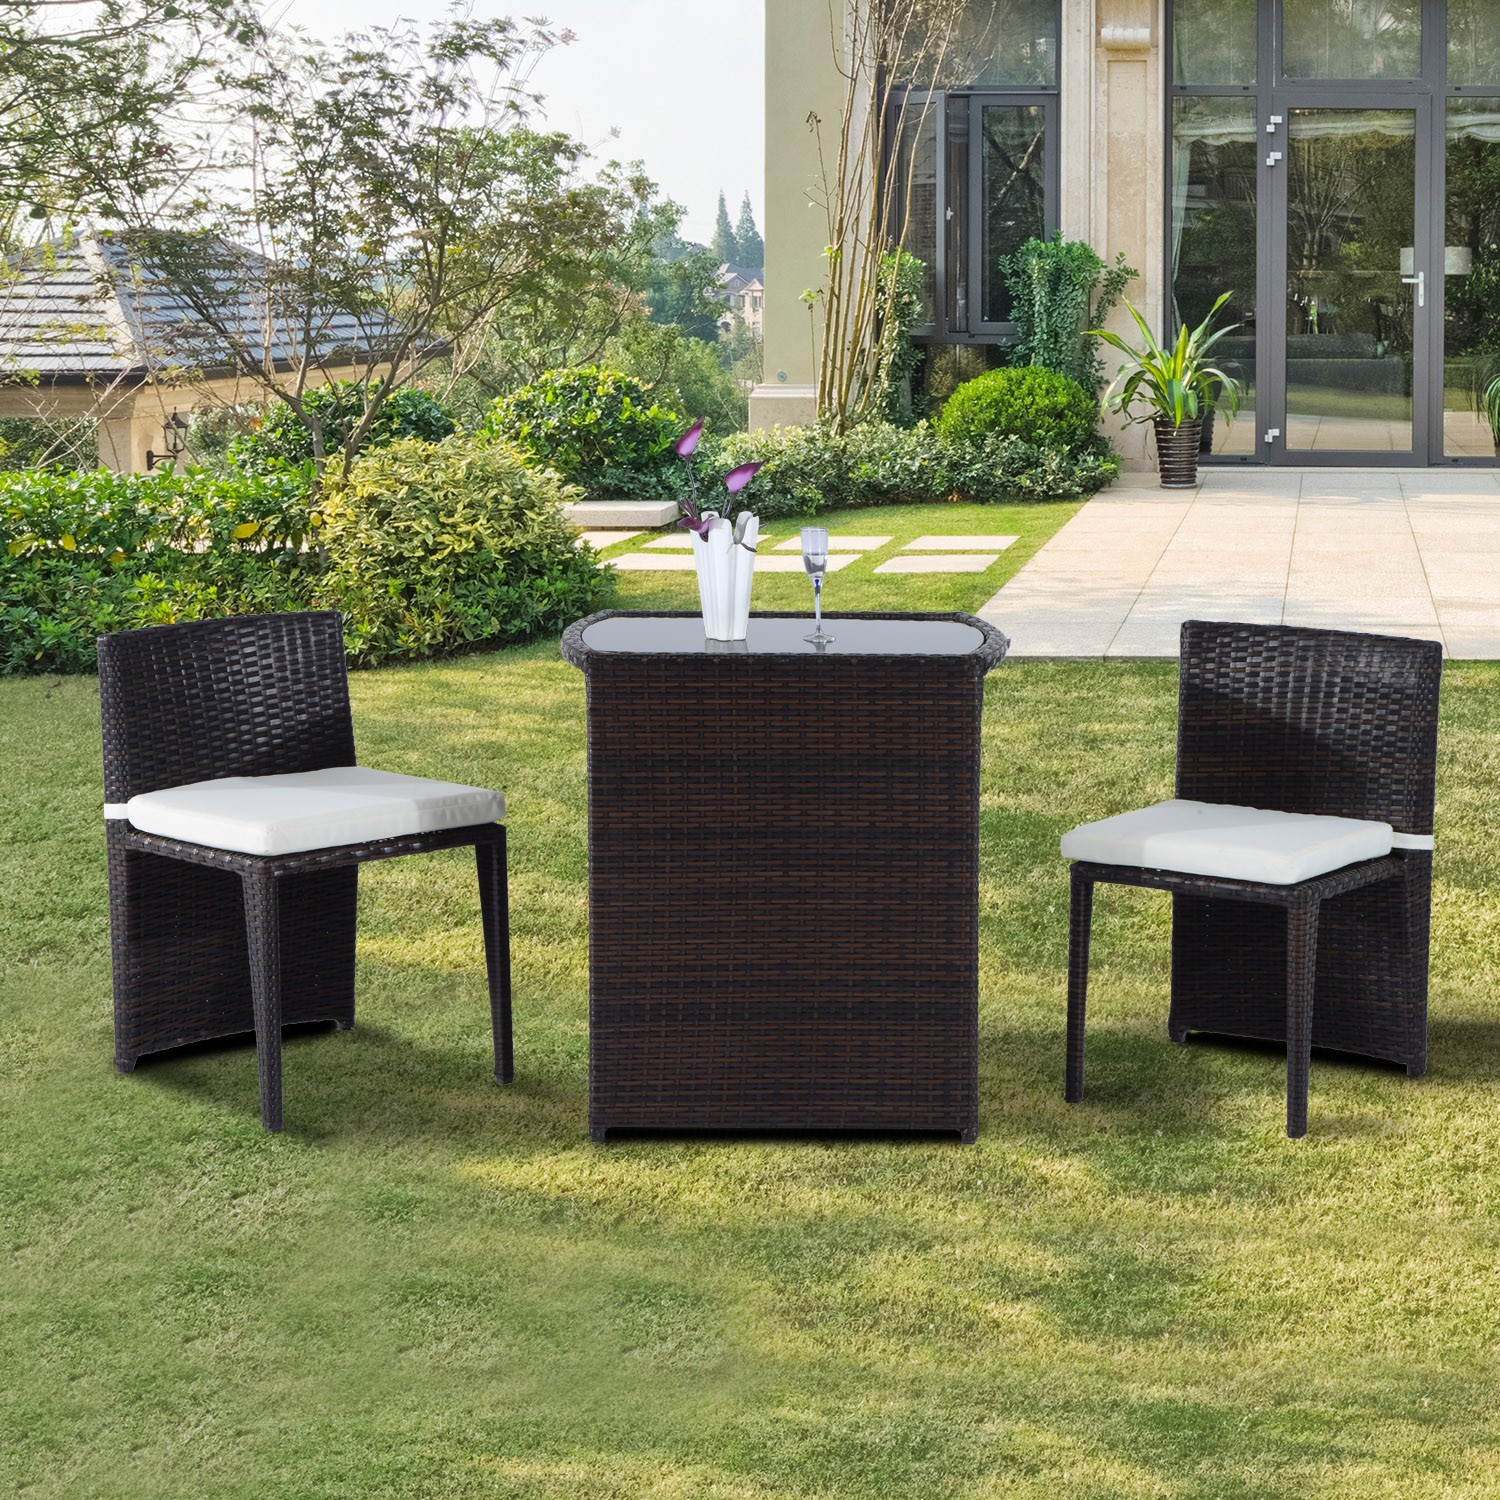 Best ideas about Outsunny Patio Furniture . Save or Pin Outsunny 3pcs Outdoor Wicker Rattan Bistro Set Patio Chair Now.